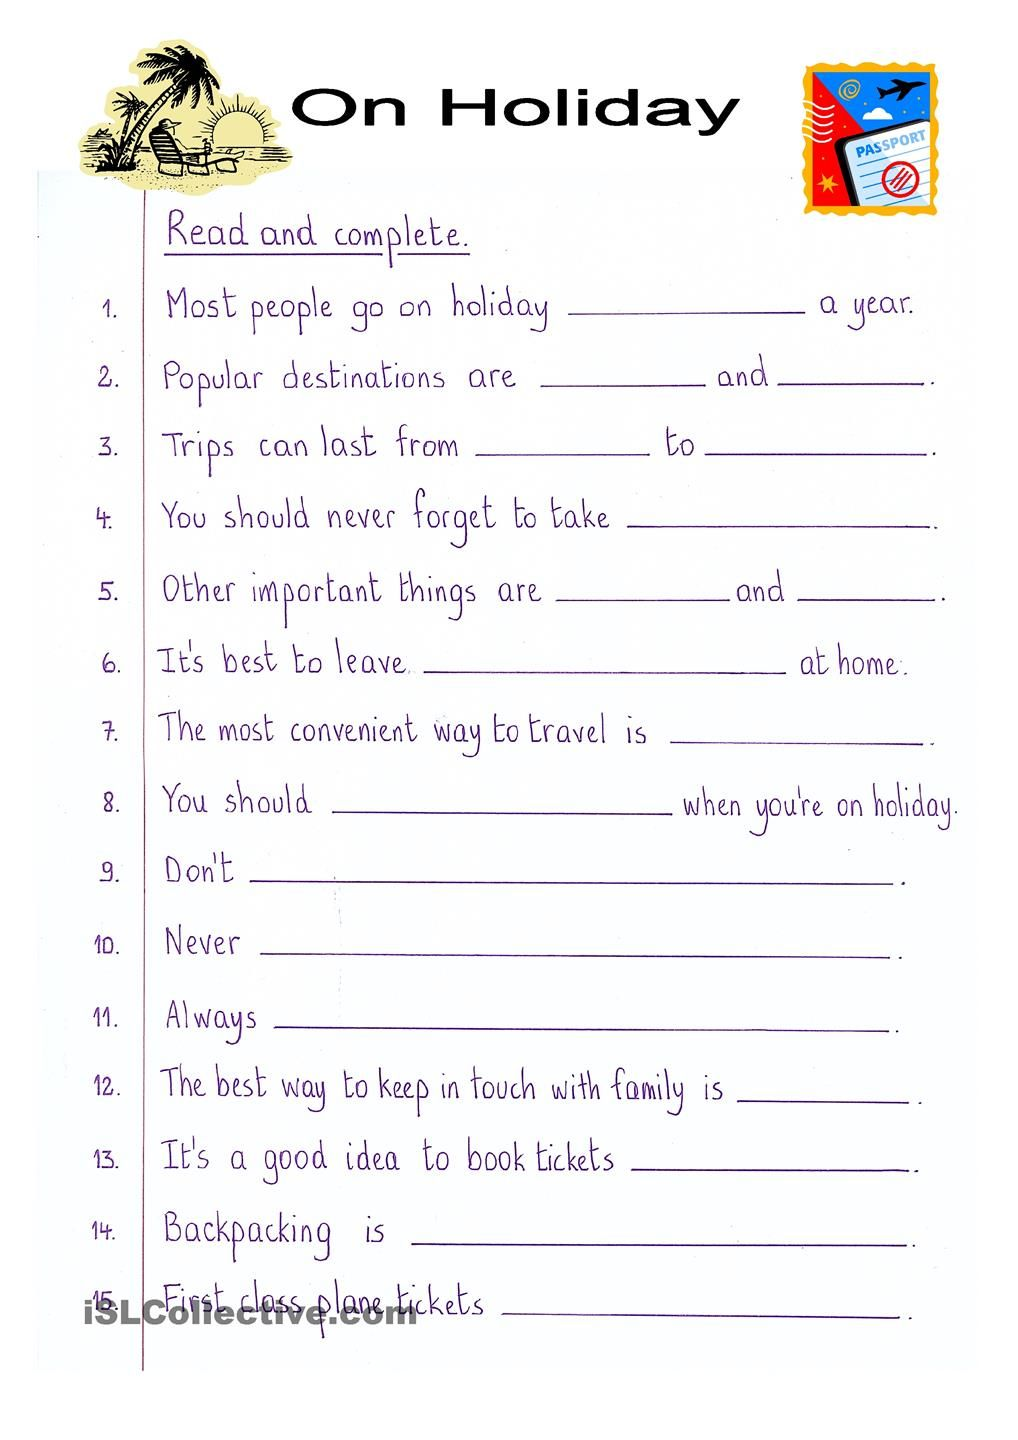 Read And Complete On Holiday Word Puzzles For Kids English Worksheets For Kids English Writing [ 1440 x 1018 Pixel ]